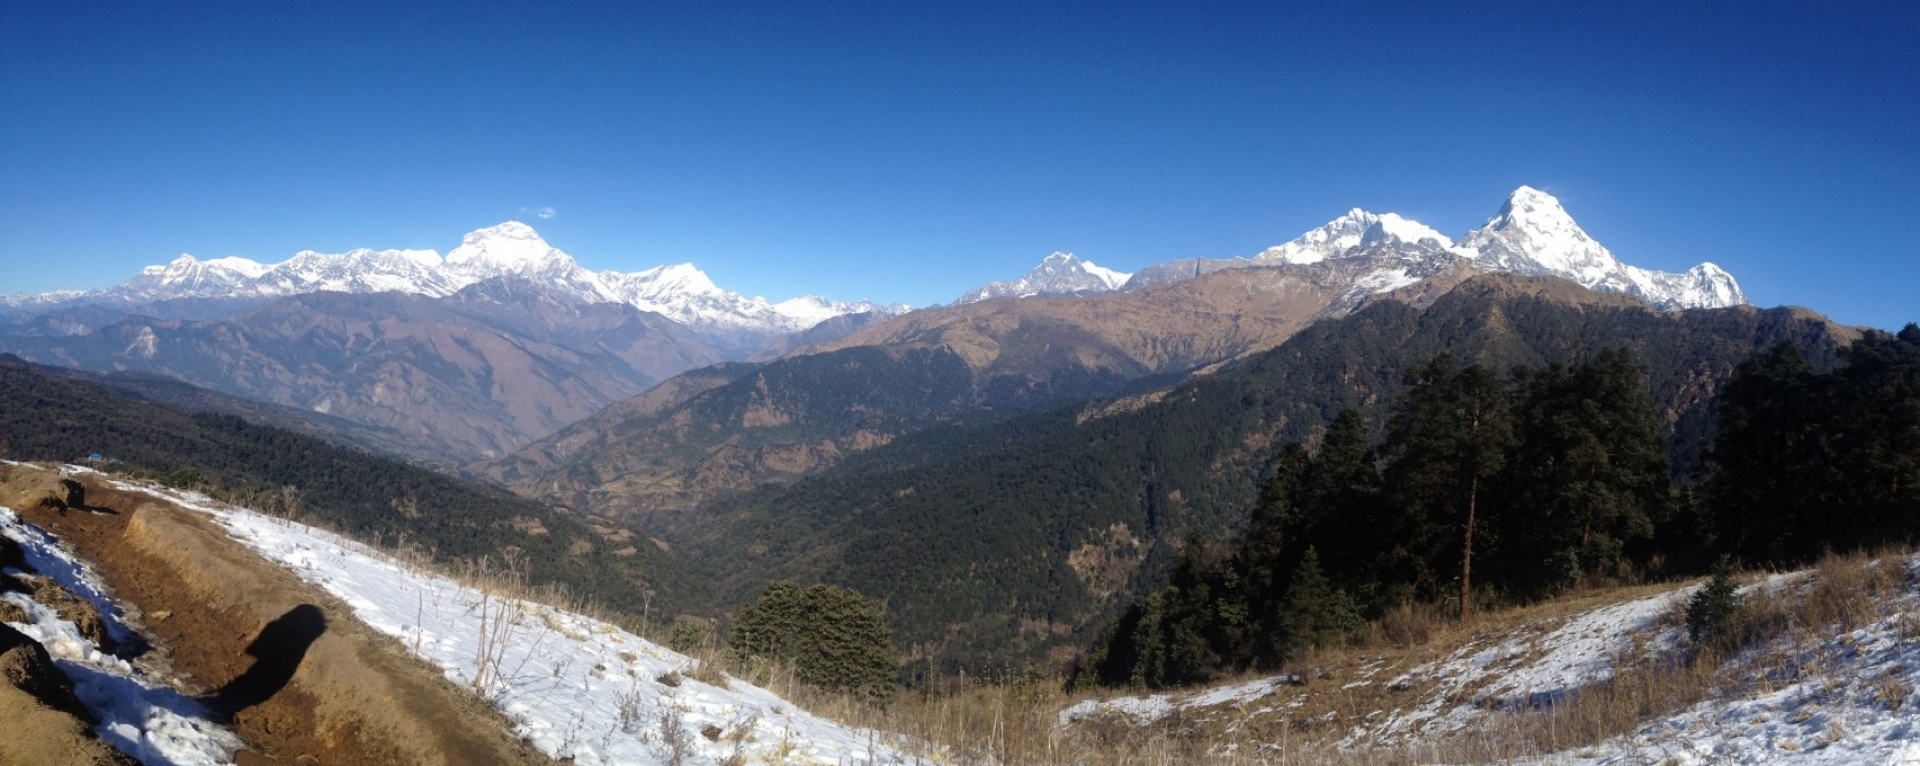 View of Mt. Dhaulagiri and mt. Annapurna ranges  near Ghorepani